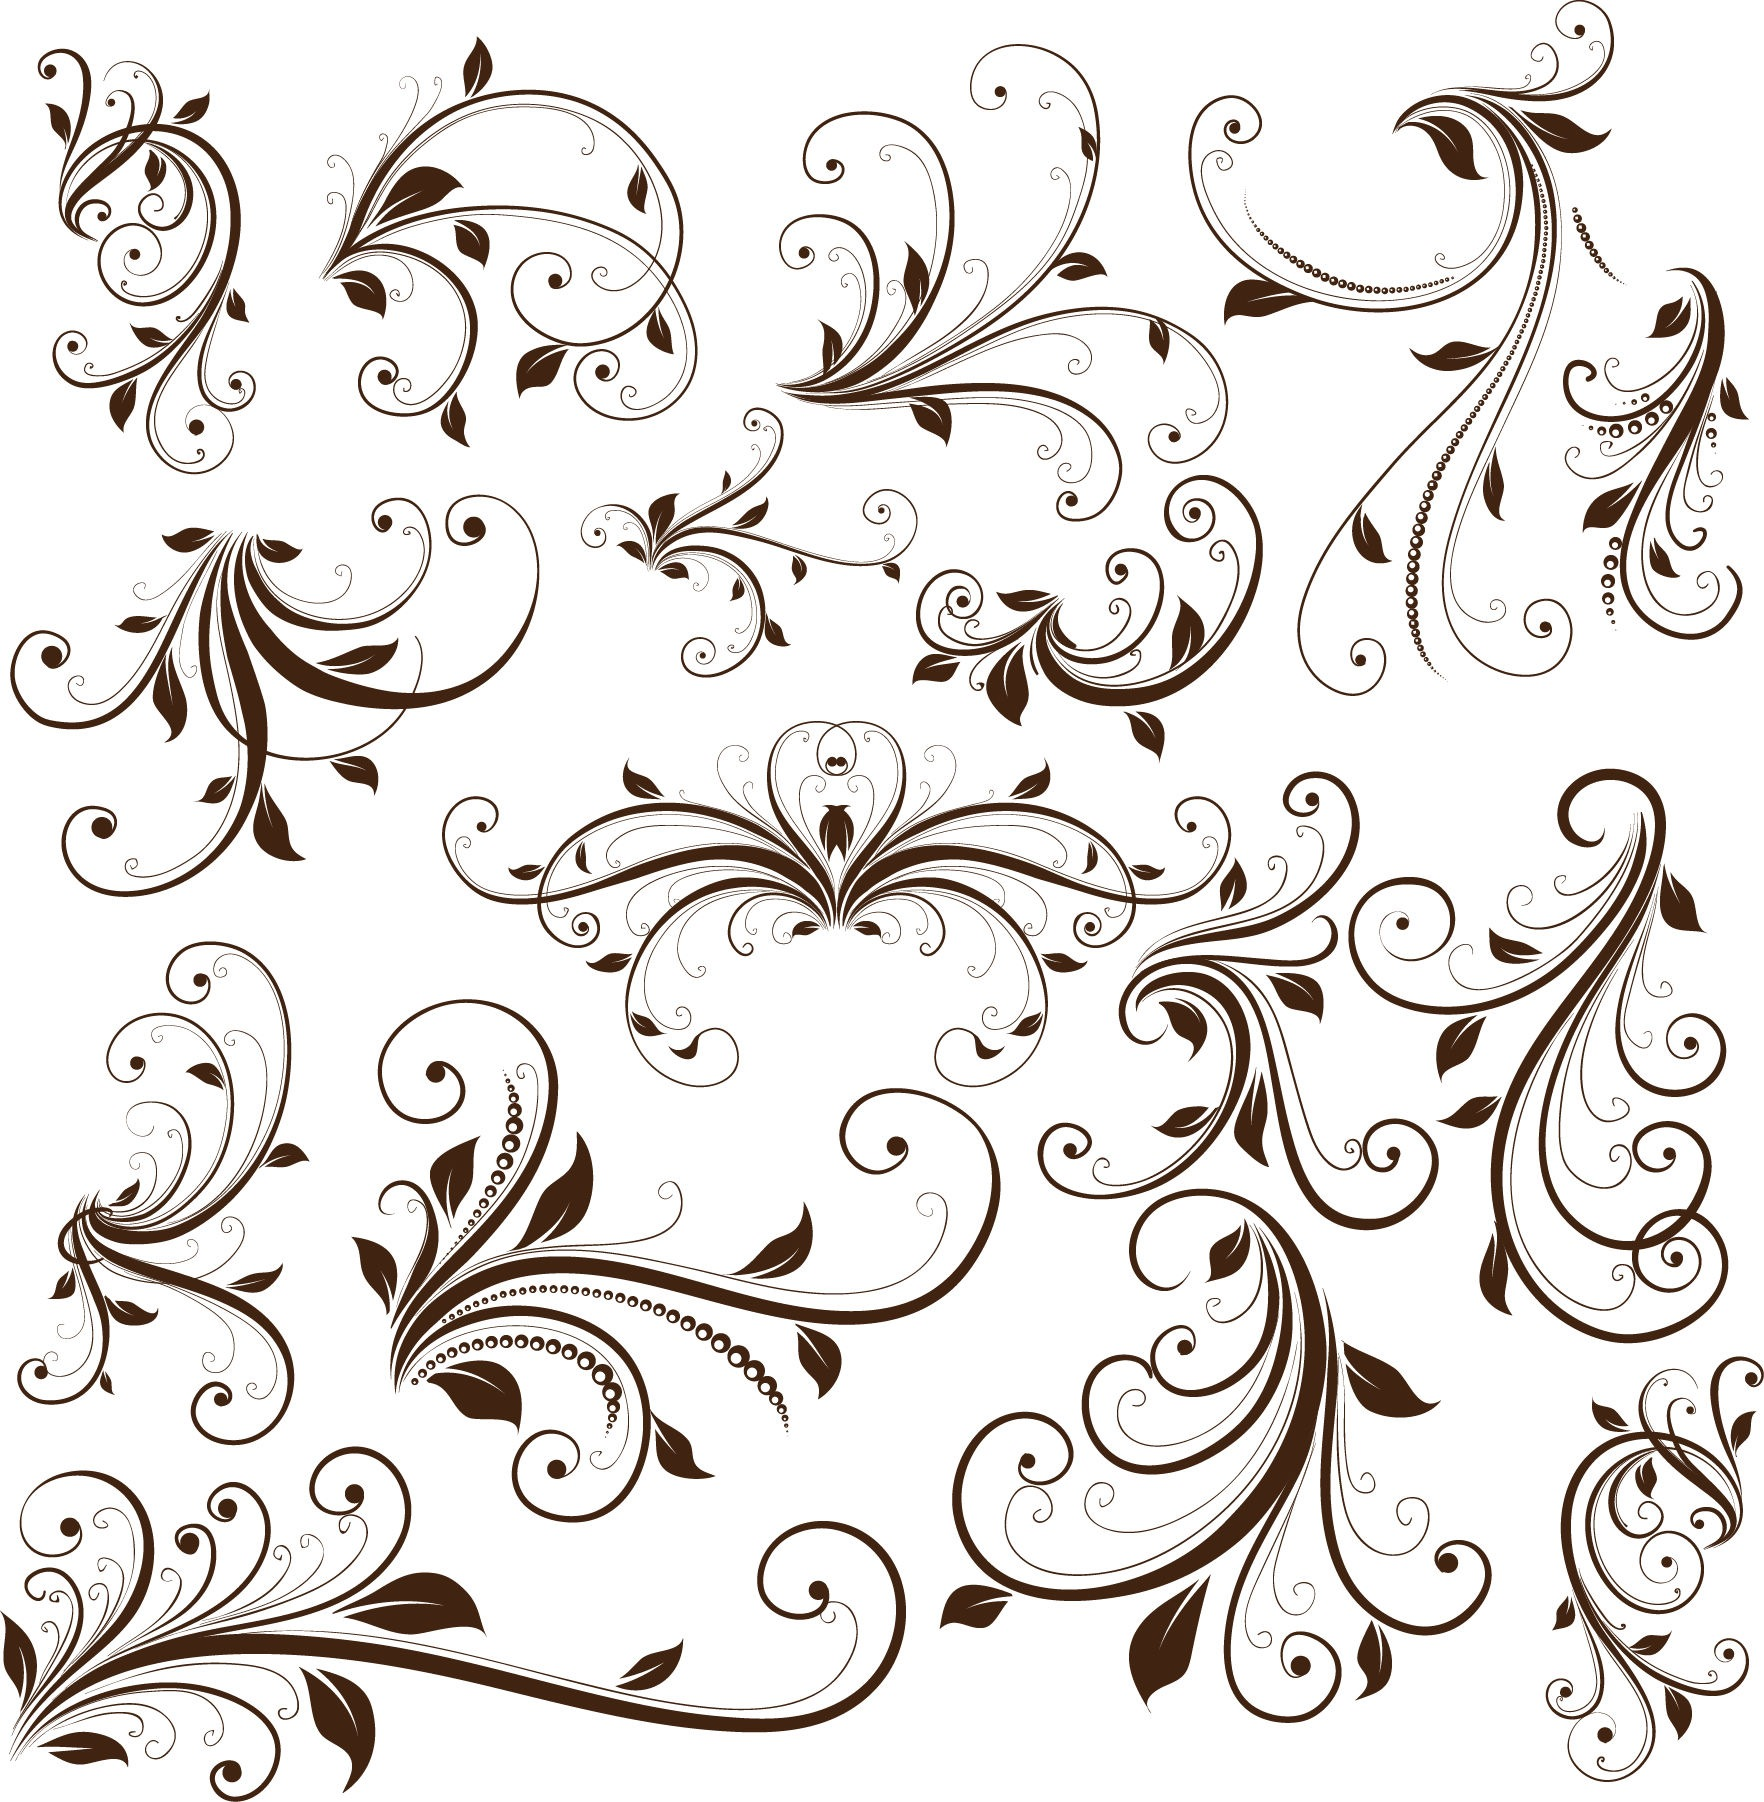 13 Decorative Swirls Vector Free Images